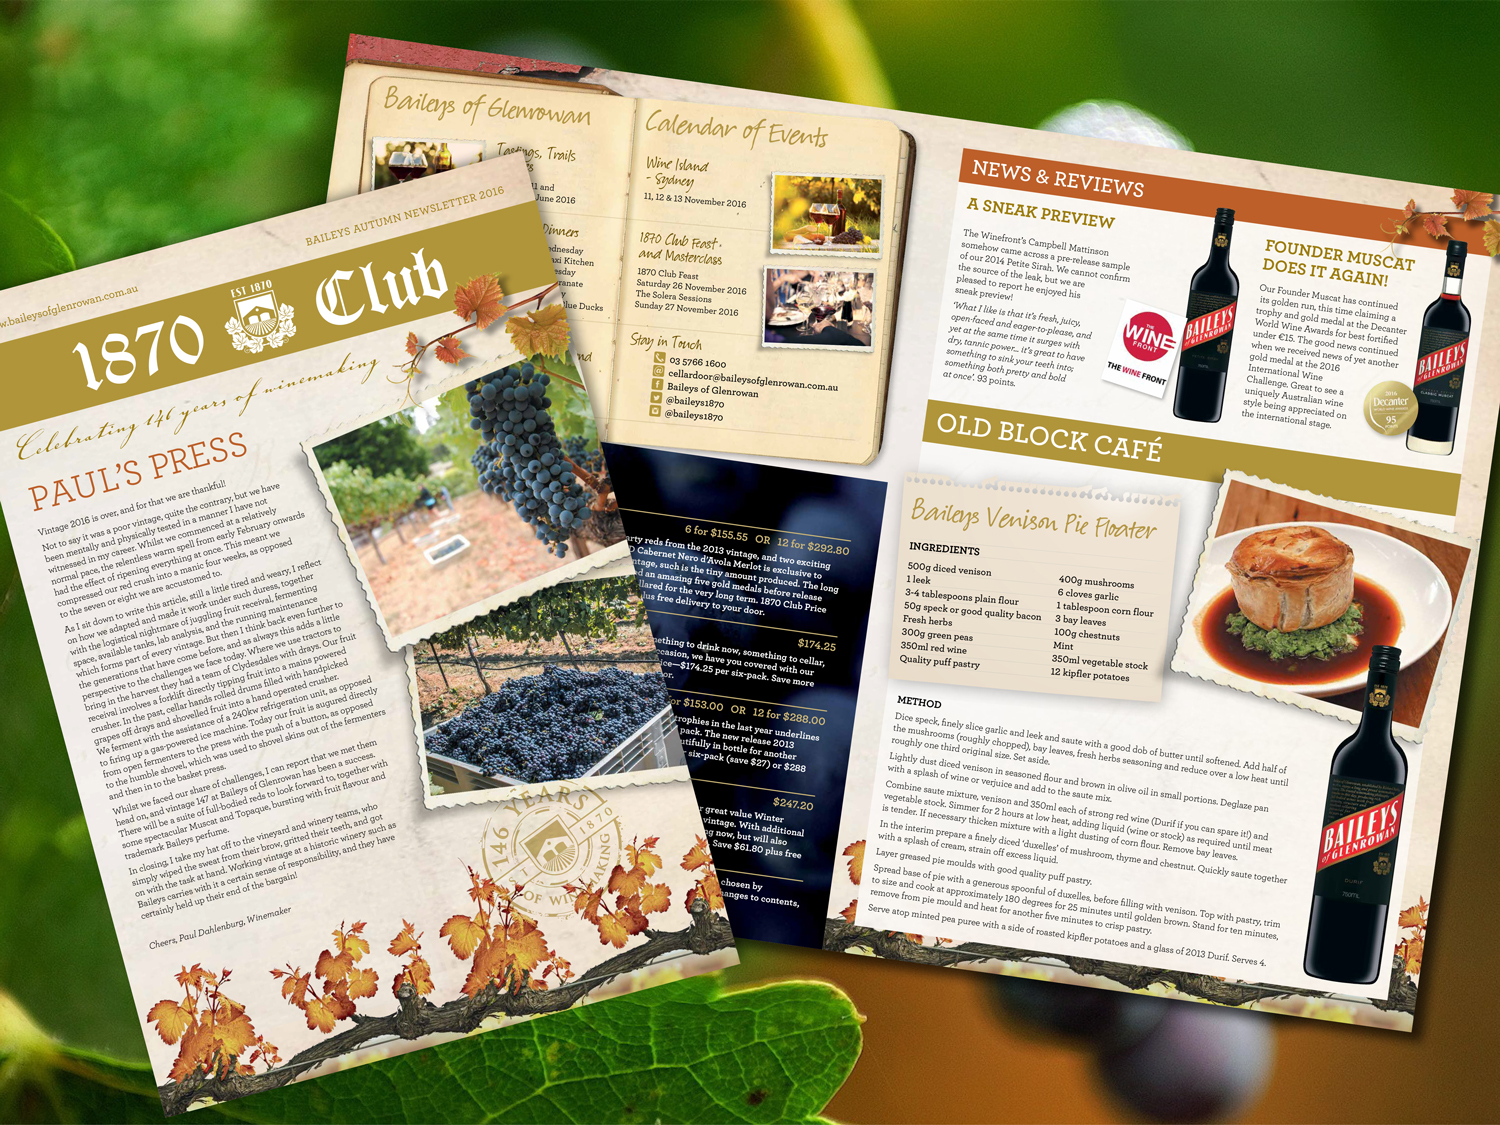 Baileys of Glenrowan 1870 Club Newsletter – Purple Possum Design – Graphic Design Wangaratta